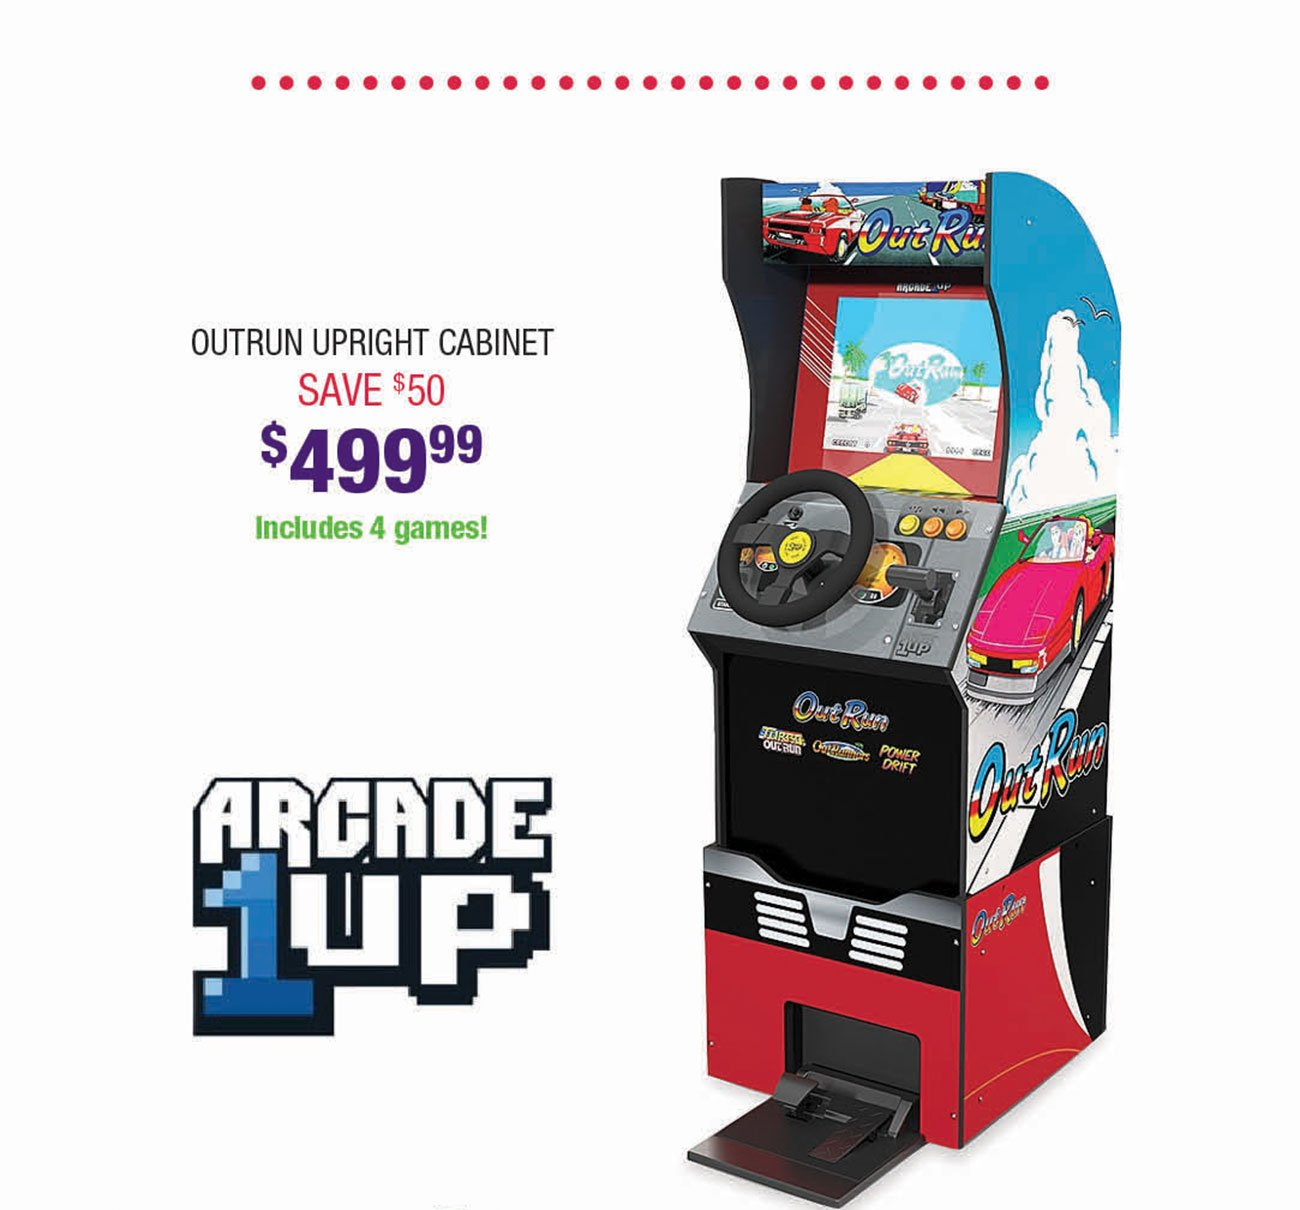 Arcade-1Up-Outrun-Upright-Cabinet